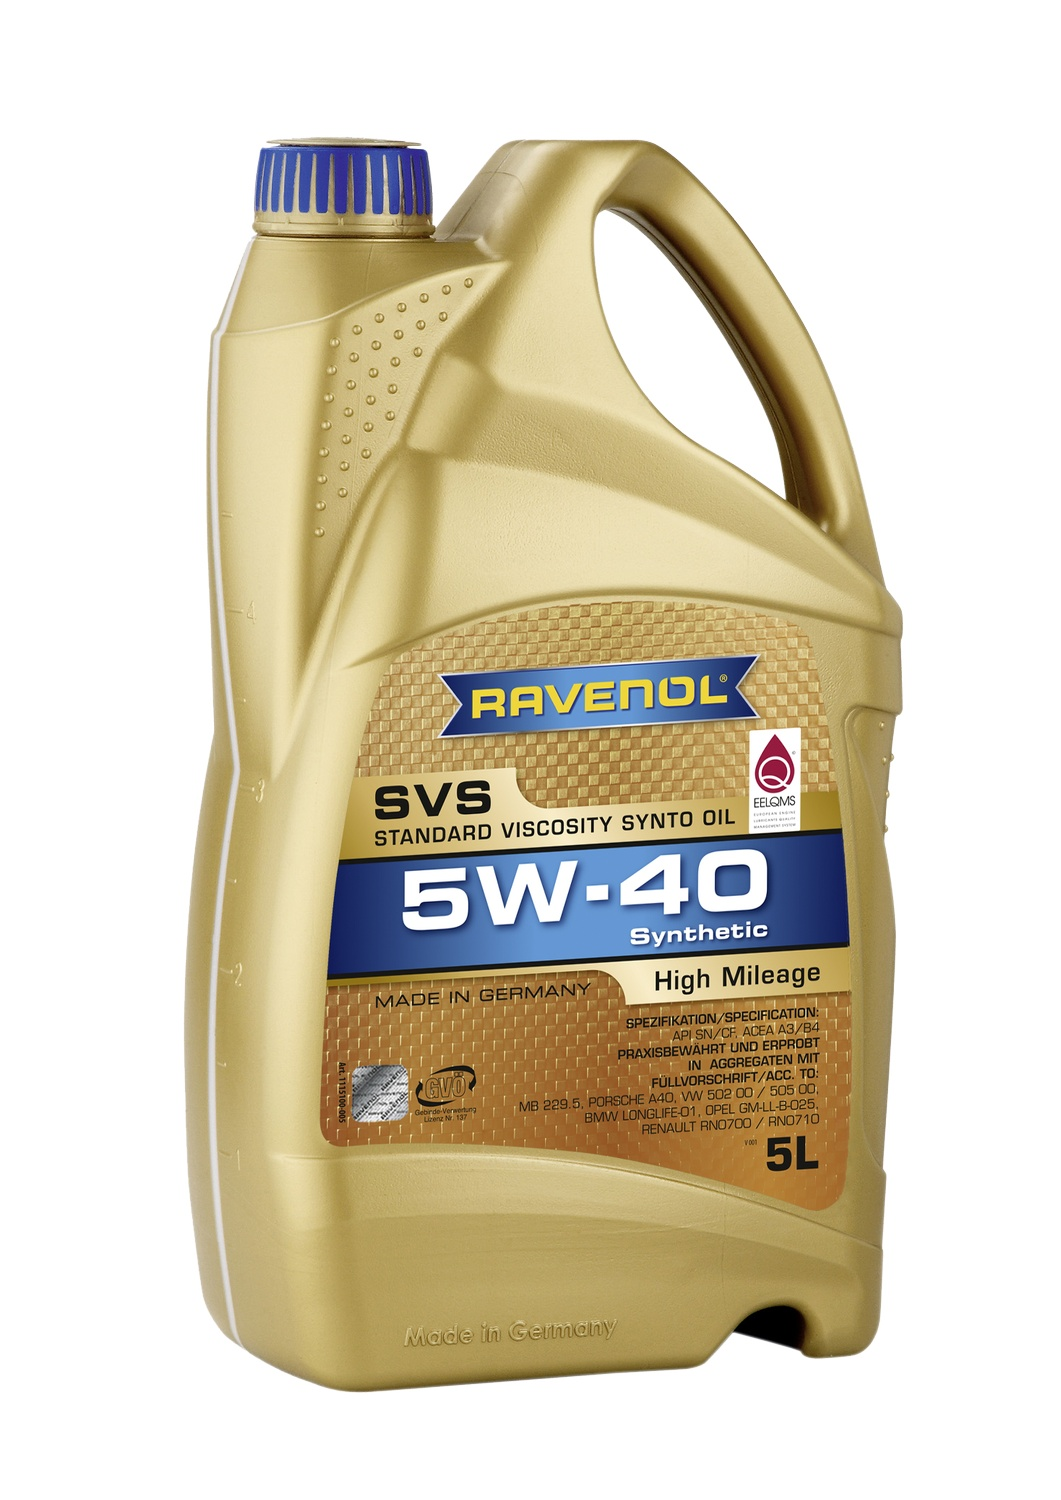 SVS Standard Viscosity Synto Oil 5W-40